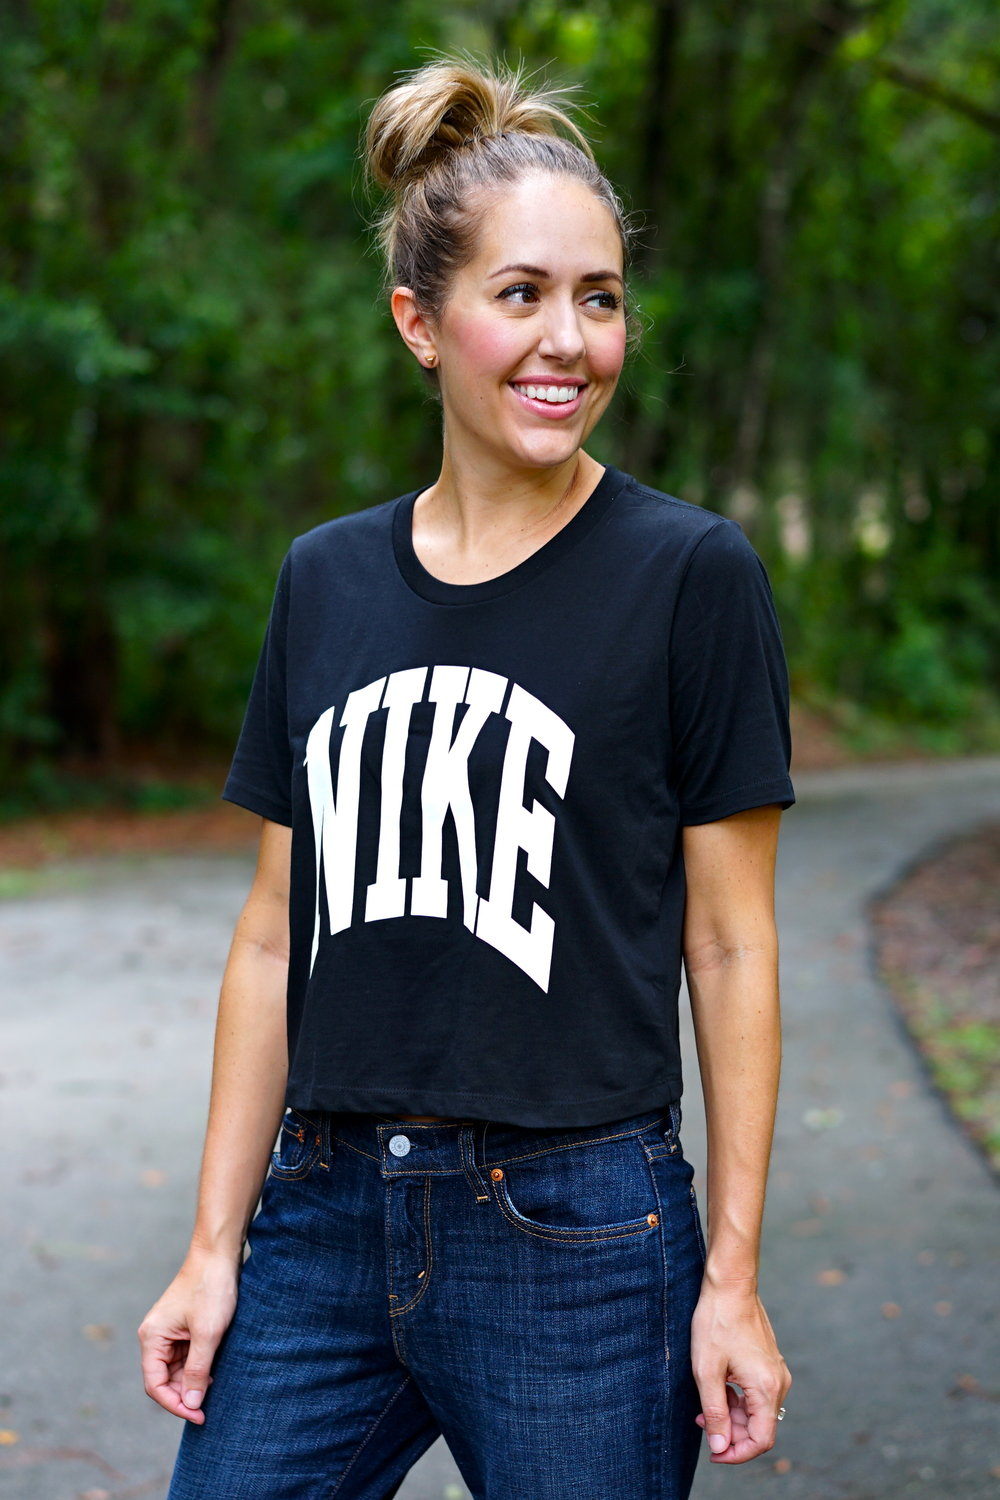 Nike cropped tee and boyfriend jeans